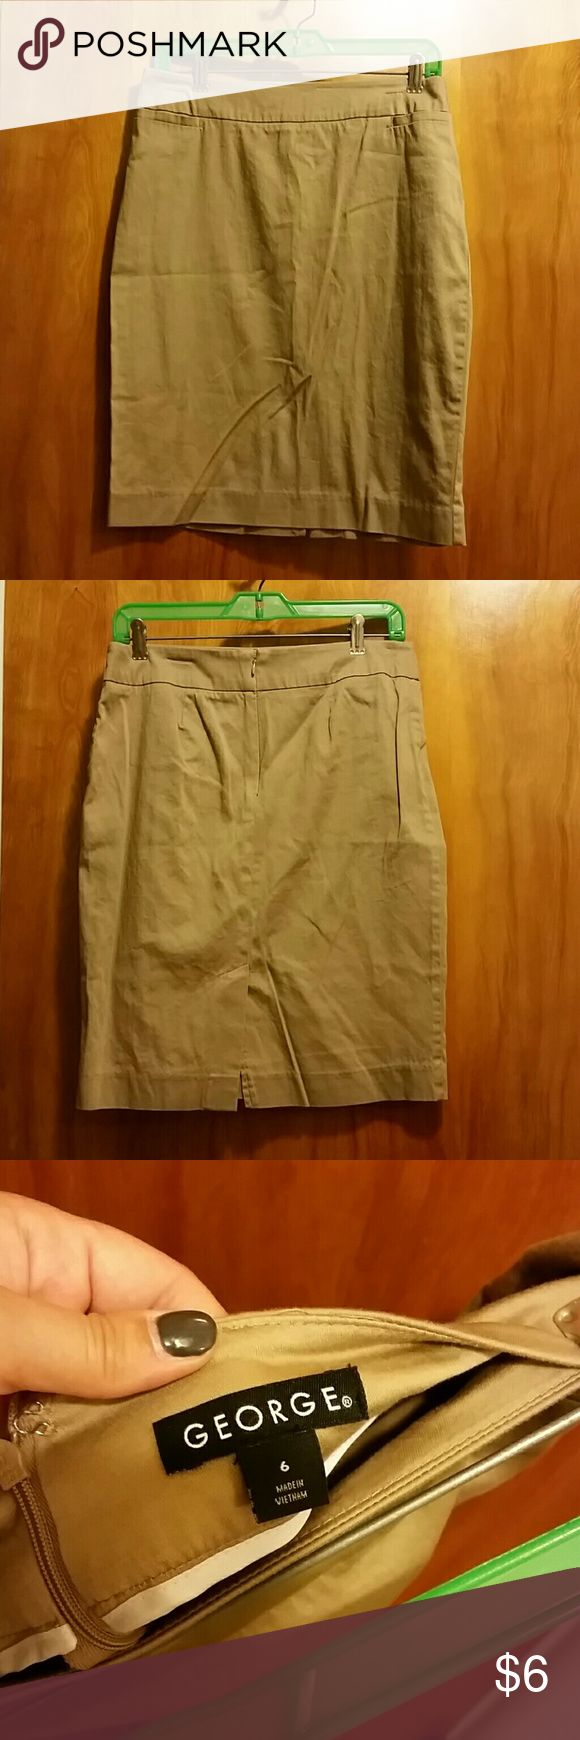 Khaki Pencil Skirt size 6 Khaki Pencil Skirt size 6, George brand, George Skirts Pencil